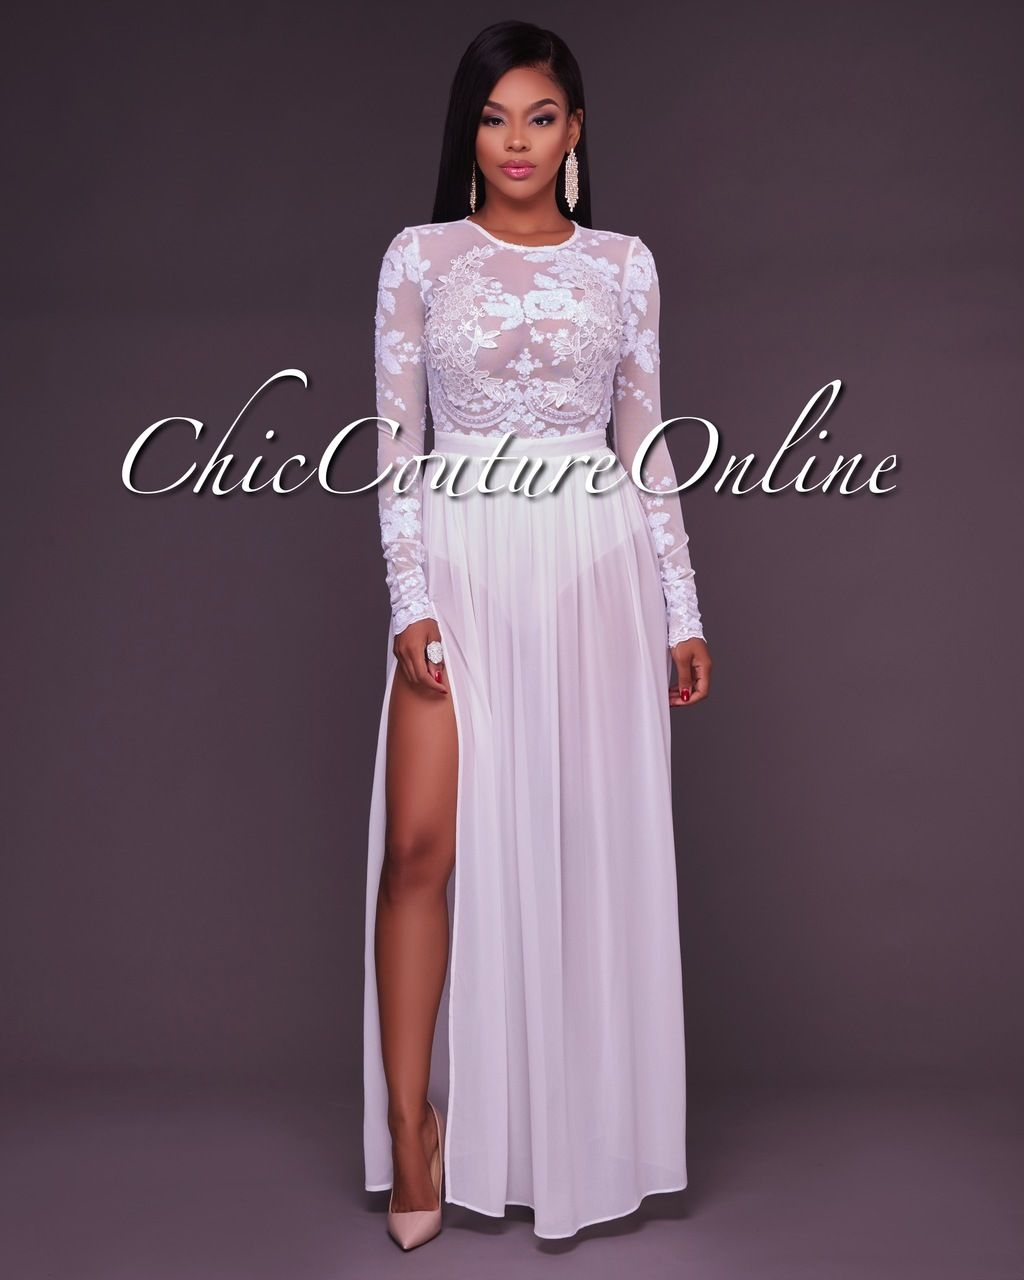 c7c32579ad00 Chic Couture Online - Sabina White Sheer Sequined Top Bodysuit Maxi Dress